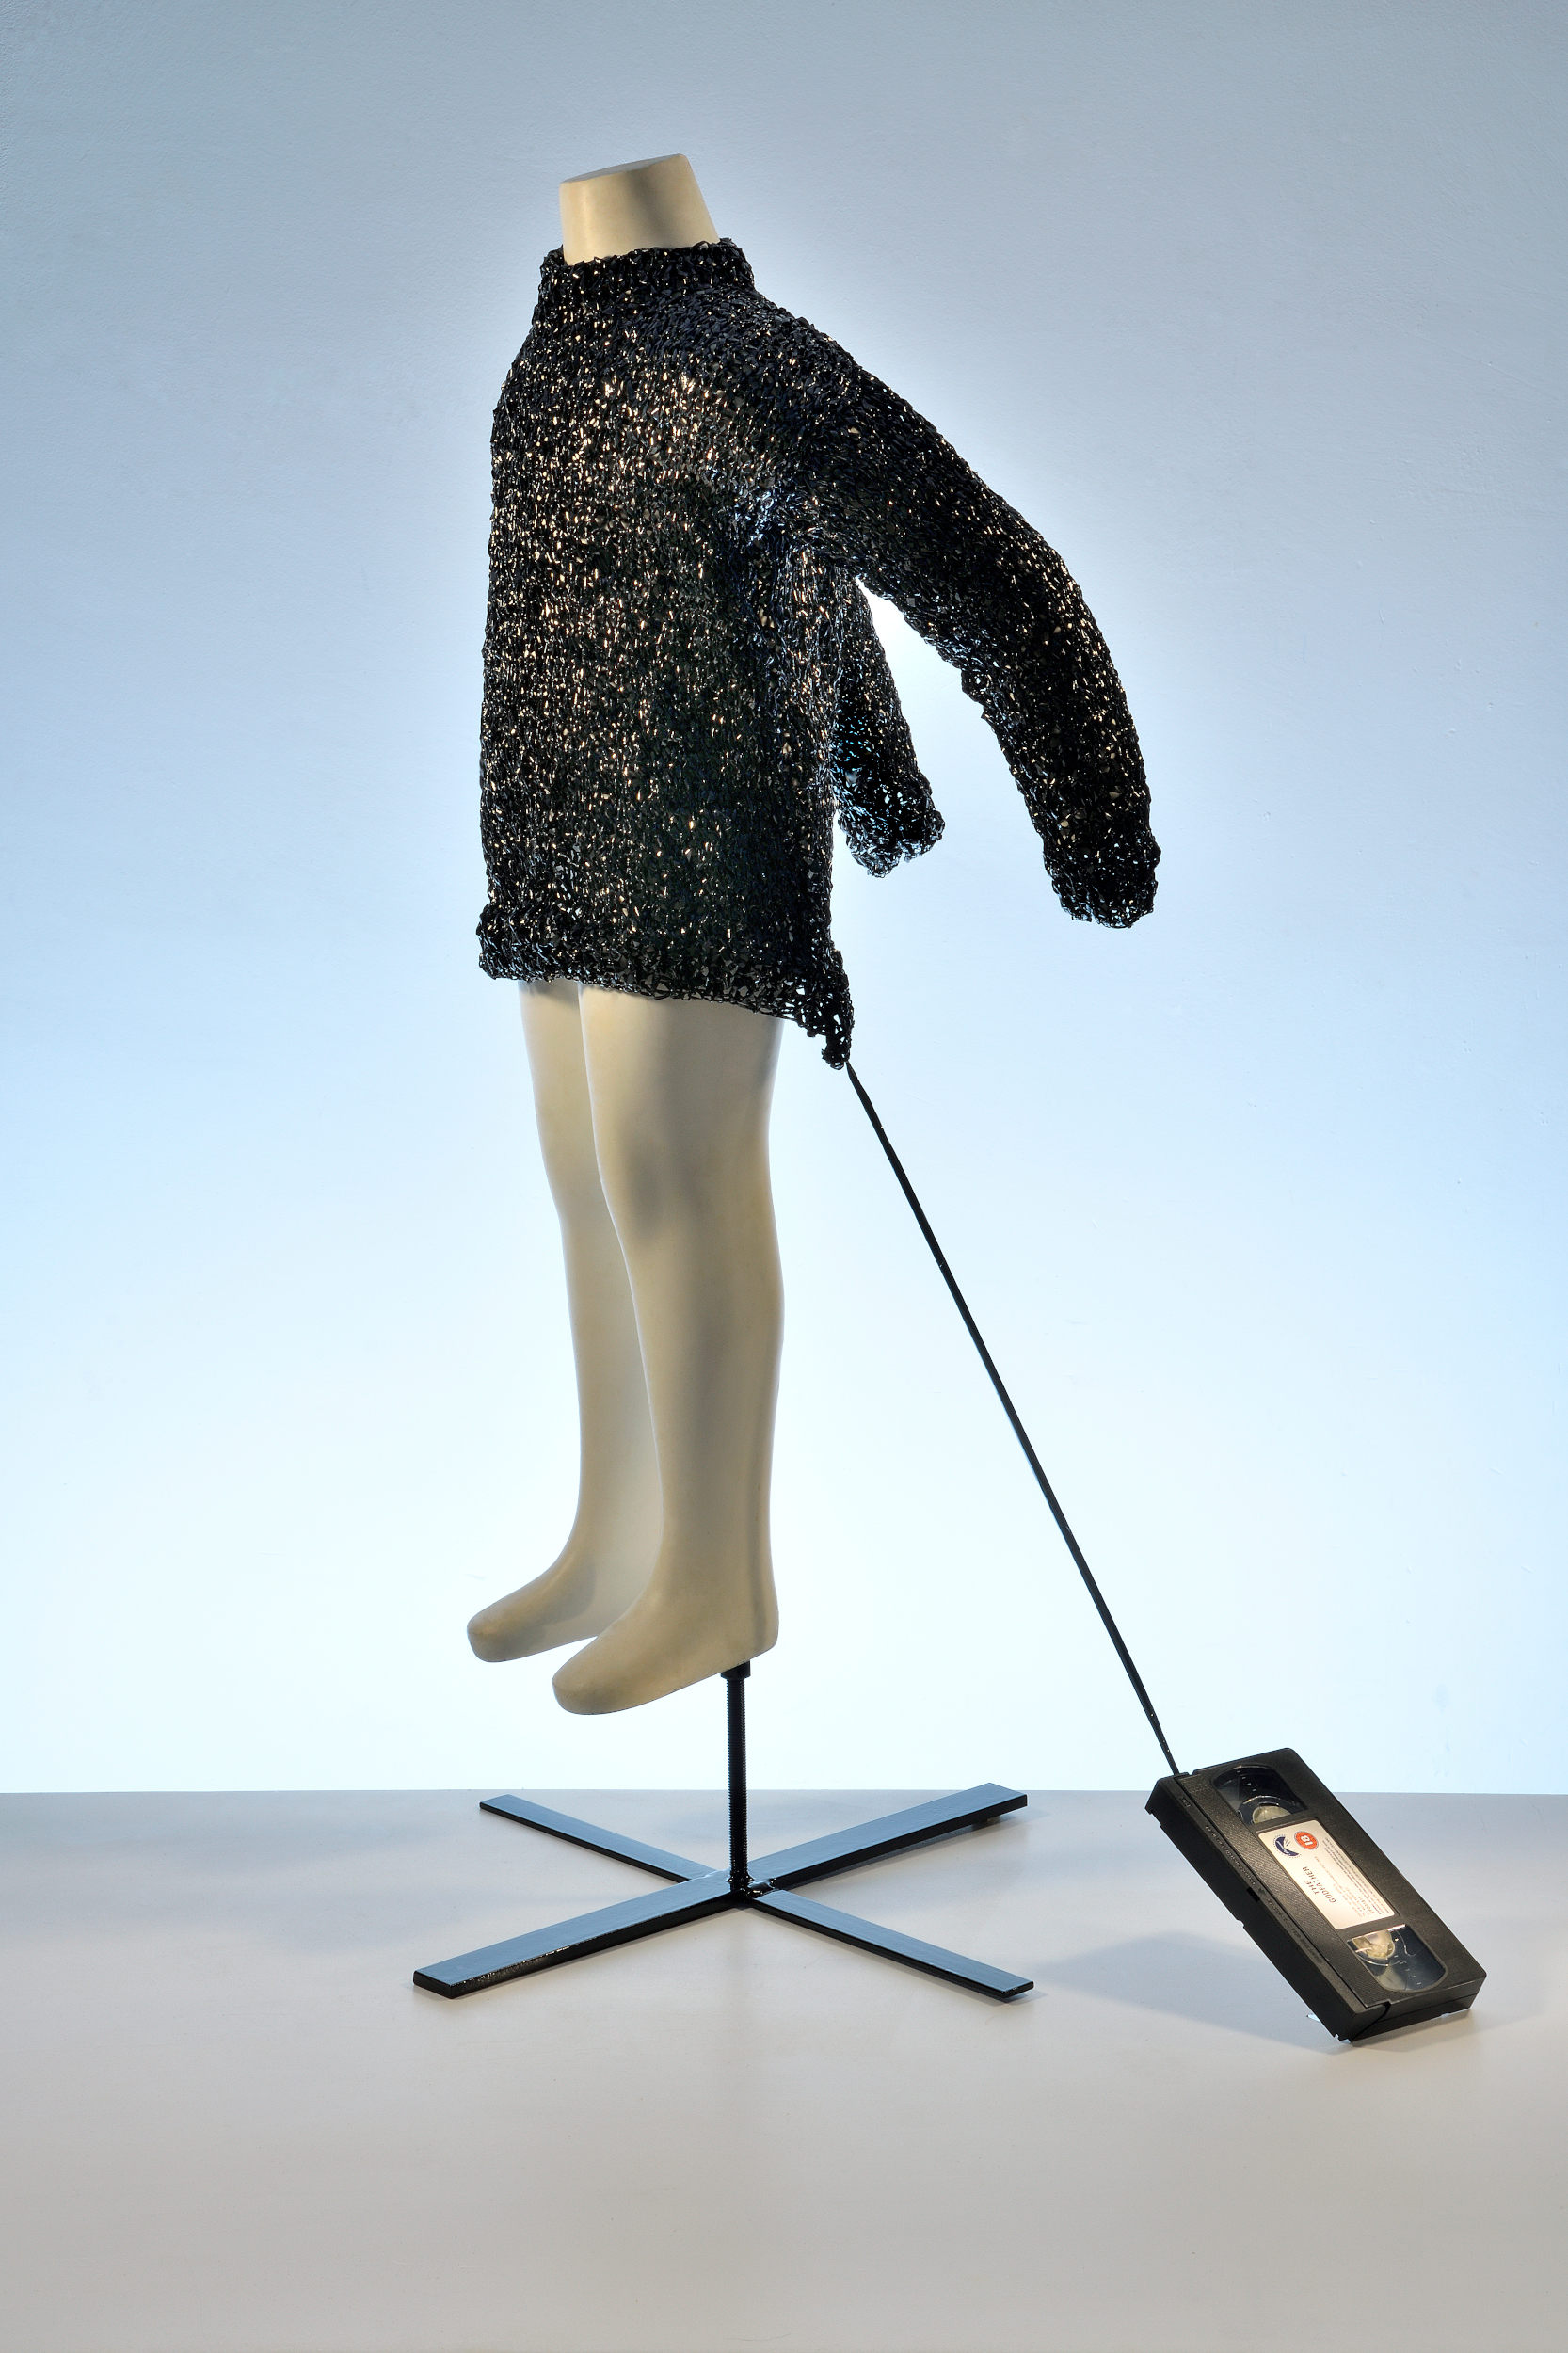 """""""Home philosophy, tape 2"""" 18 certificate Violence video tape knitted child's jumper, age 5 - 6.  2011  Dimensions 72cm x 55cm x 103cm"""